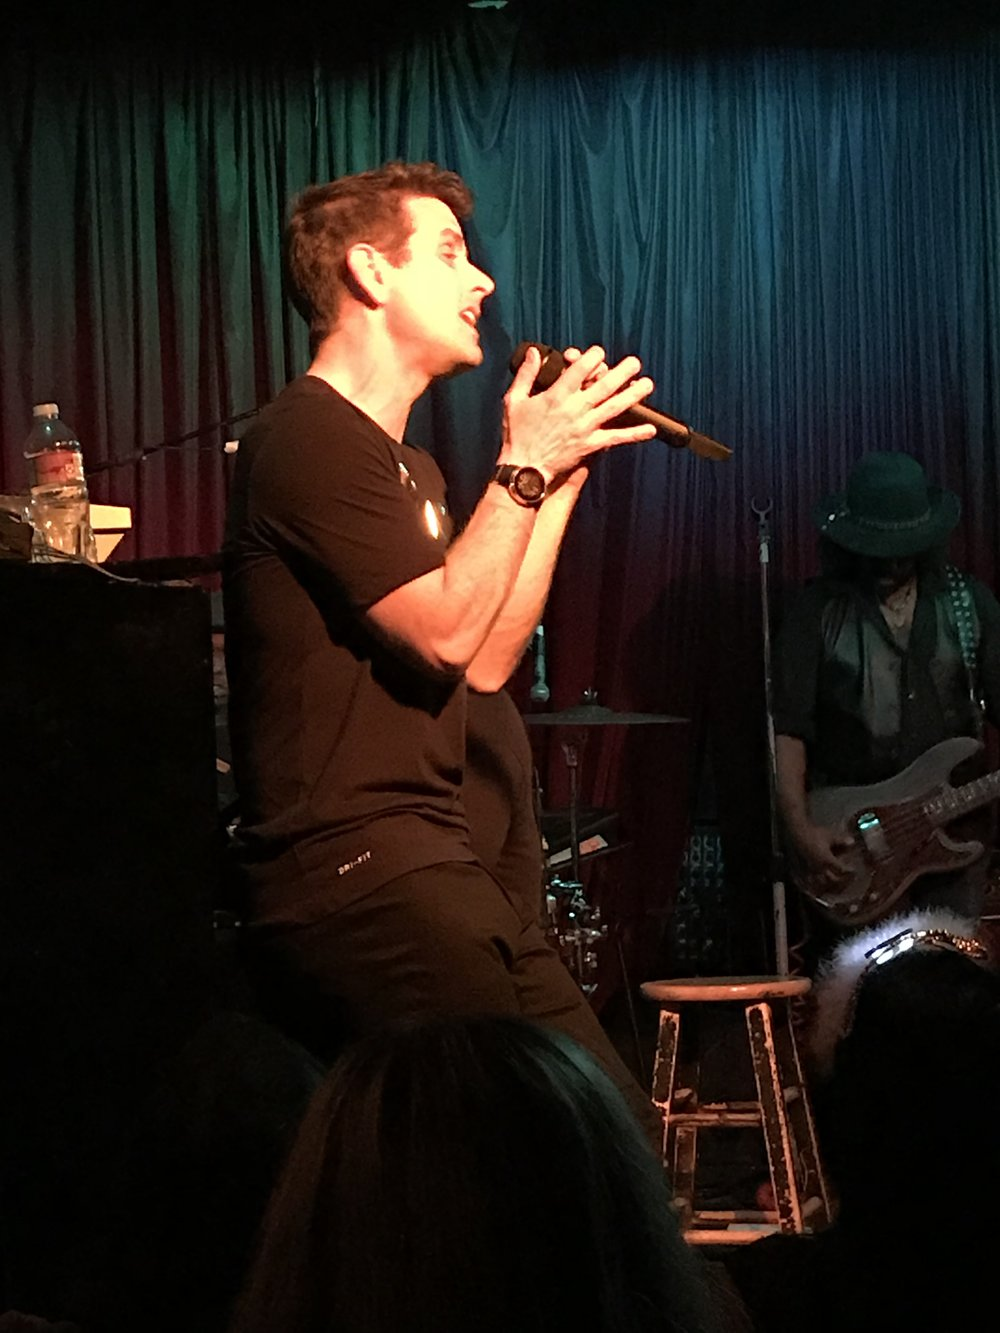 Joey McIntyre - Hollywood Nights (Photo by Mandy)